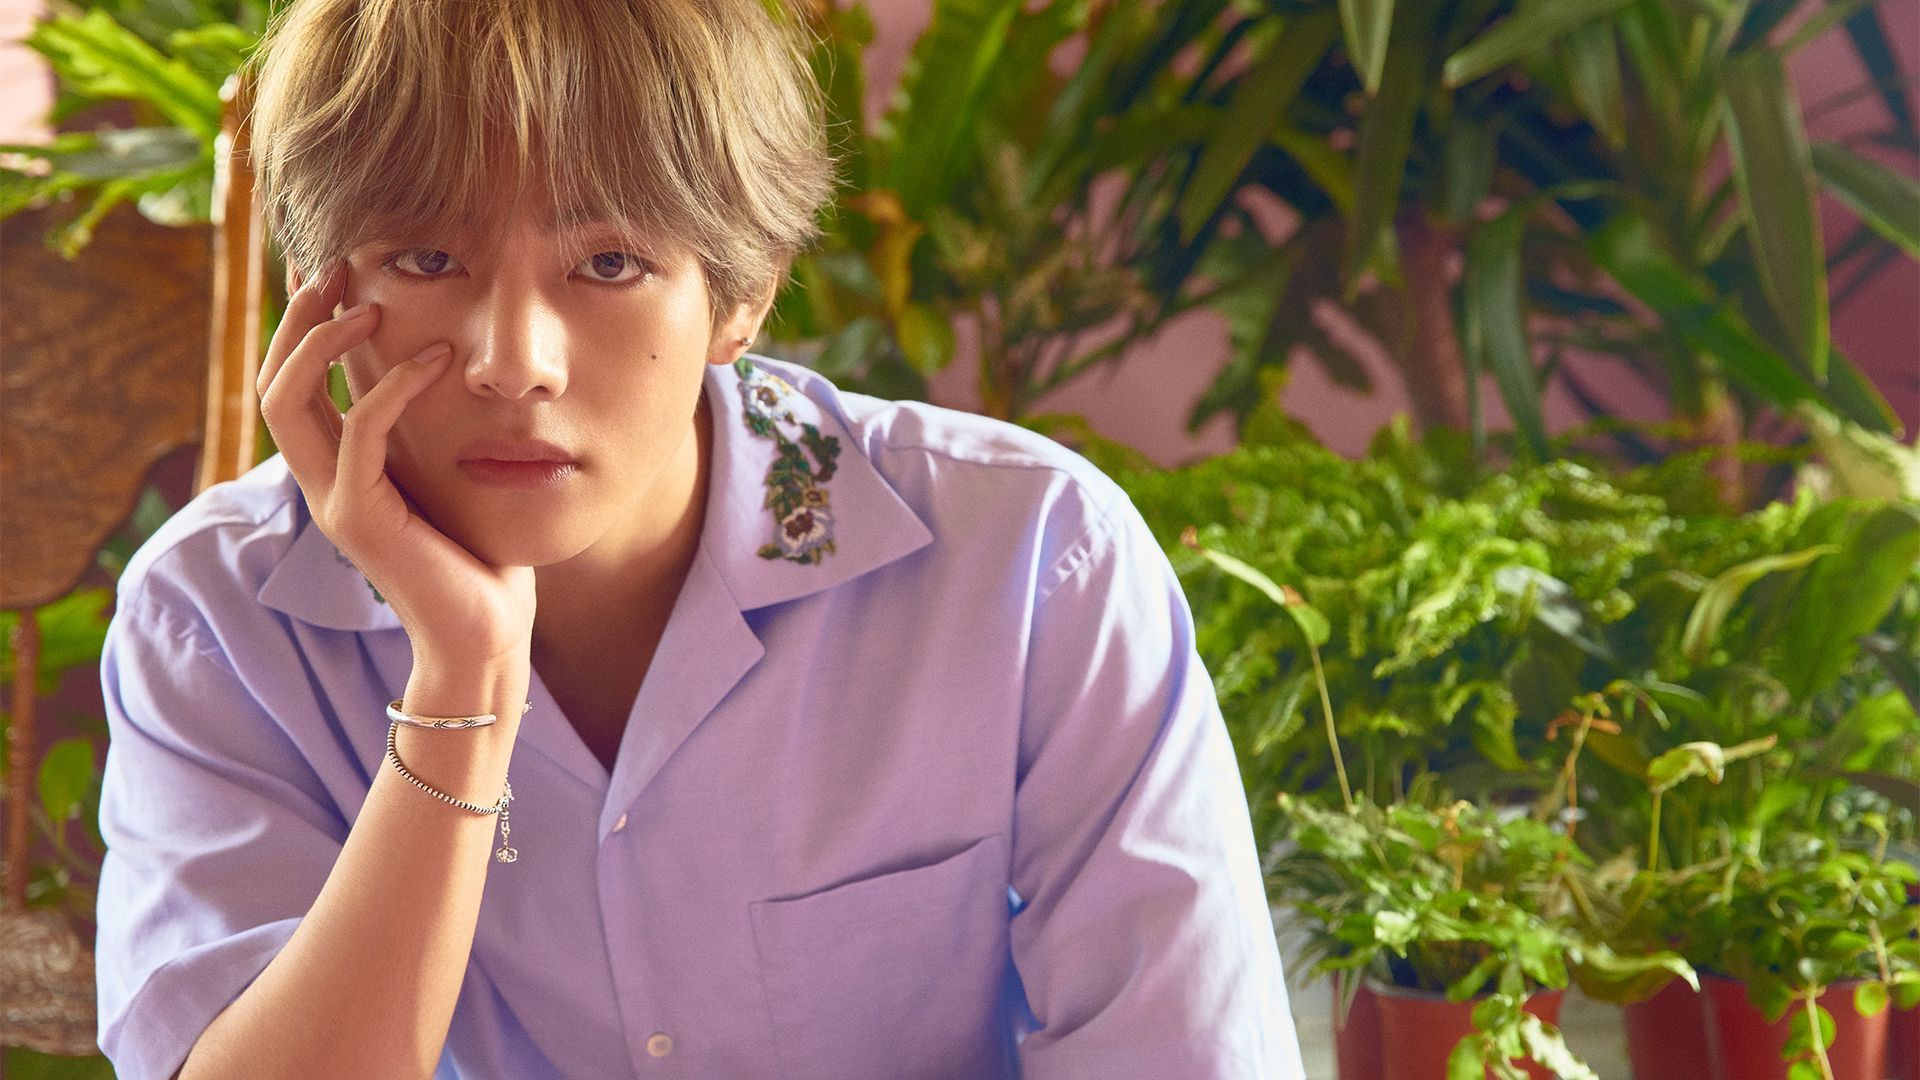 Kim Taehyung Wallpaper Desktop Is Hd Wallpapers Backgrounds For Desktop Or Mobile Device To Find More Wallpapers On I In 2020 Bts Concept Photo Photo L Kim Taehyung